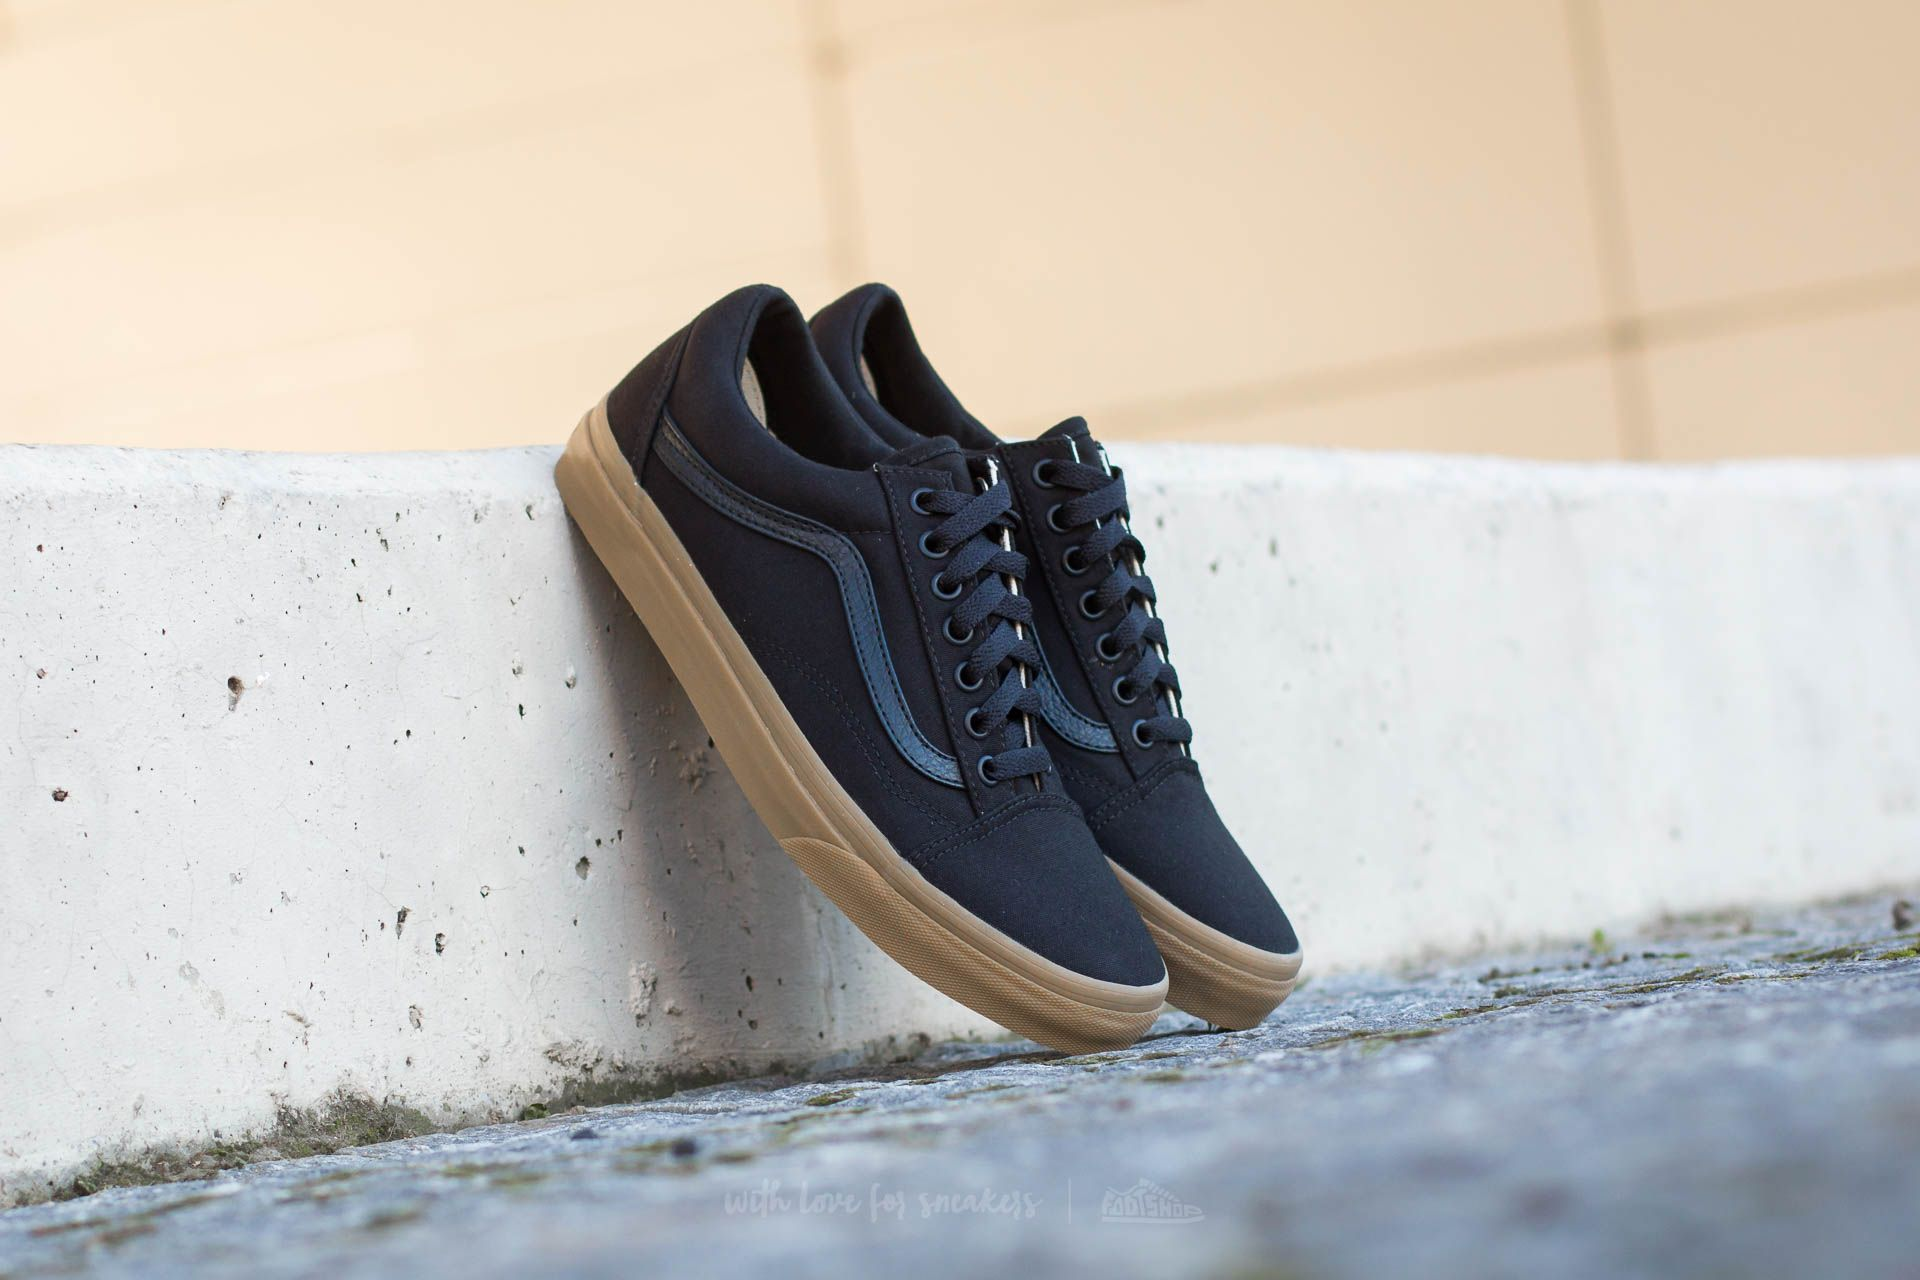 vans old skool gum sole black